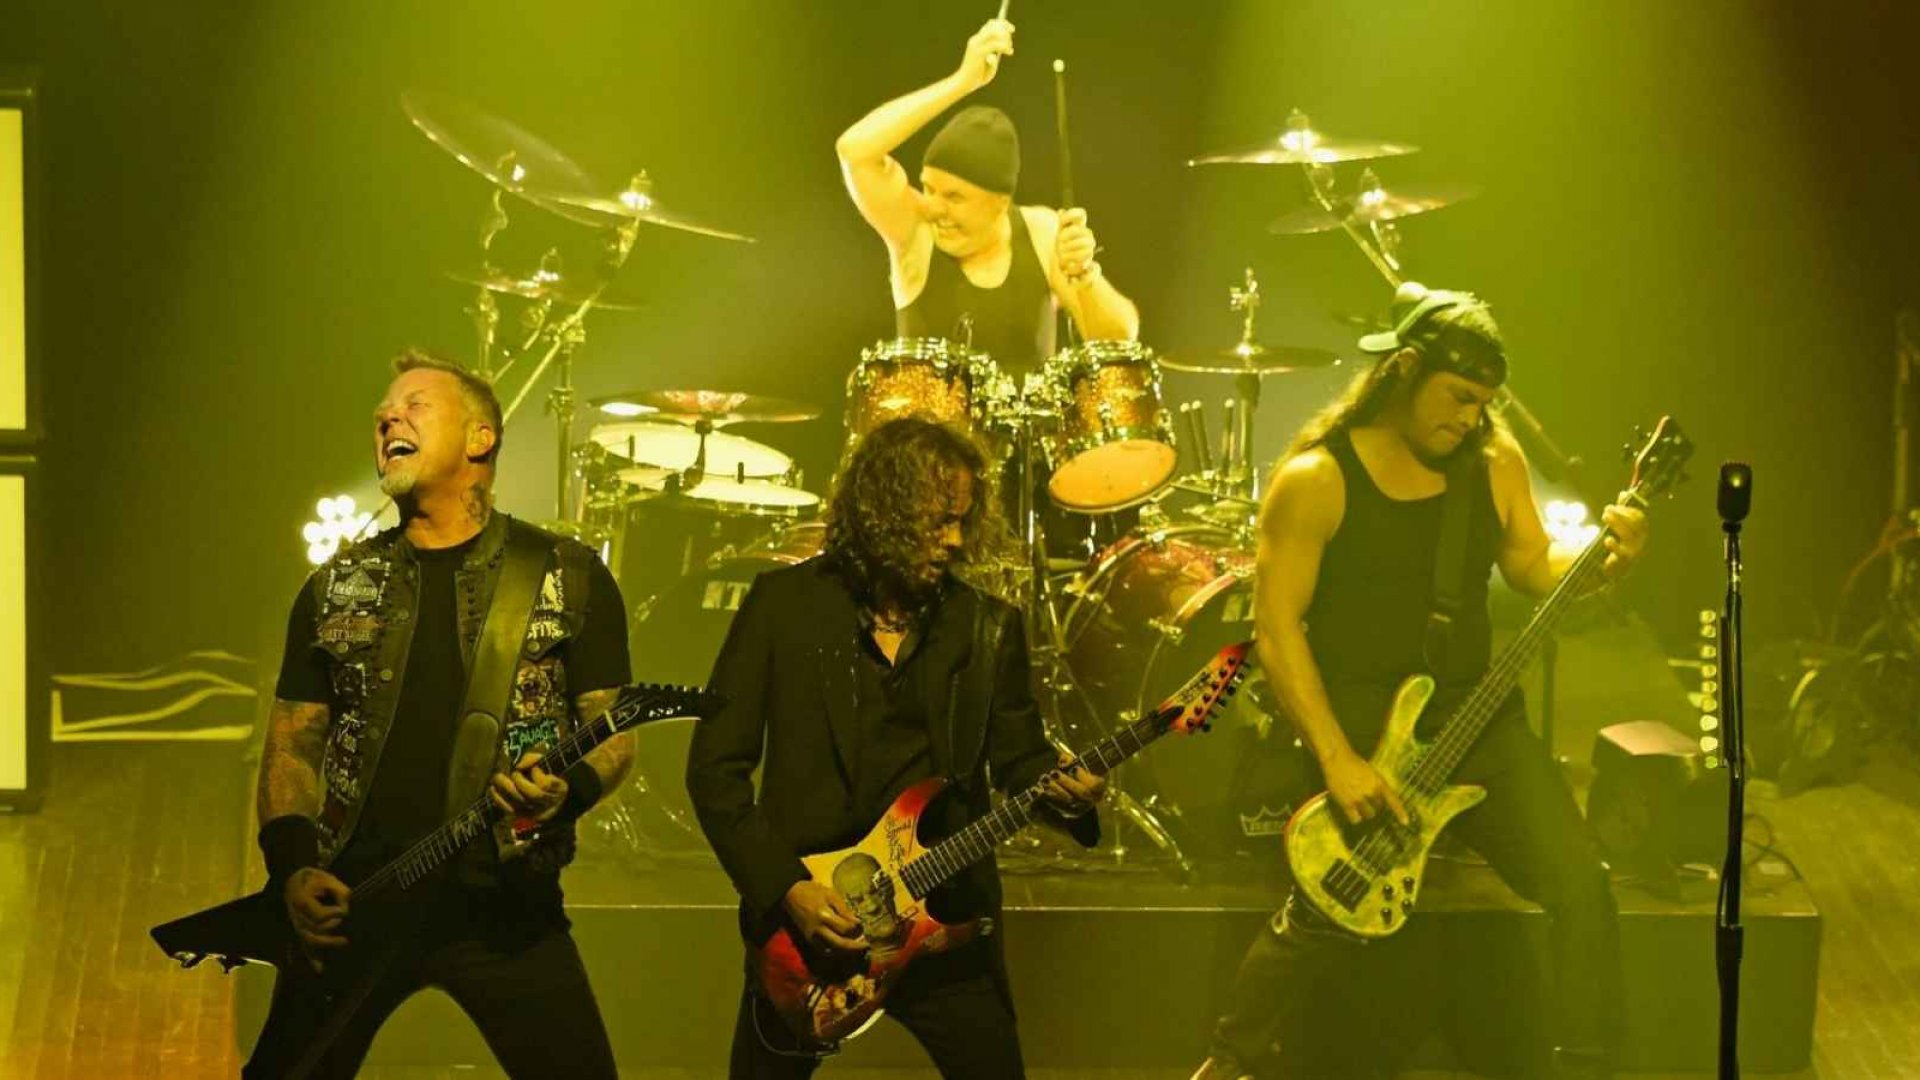 Does Your Business Need to Create 'Raving Fans'? Metallica Provides the Perfect Blueprint